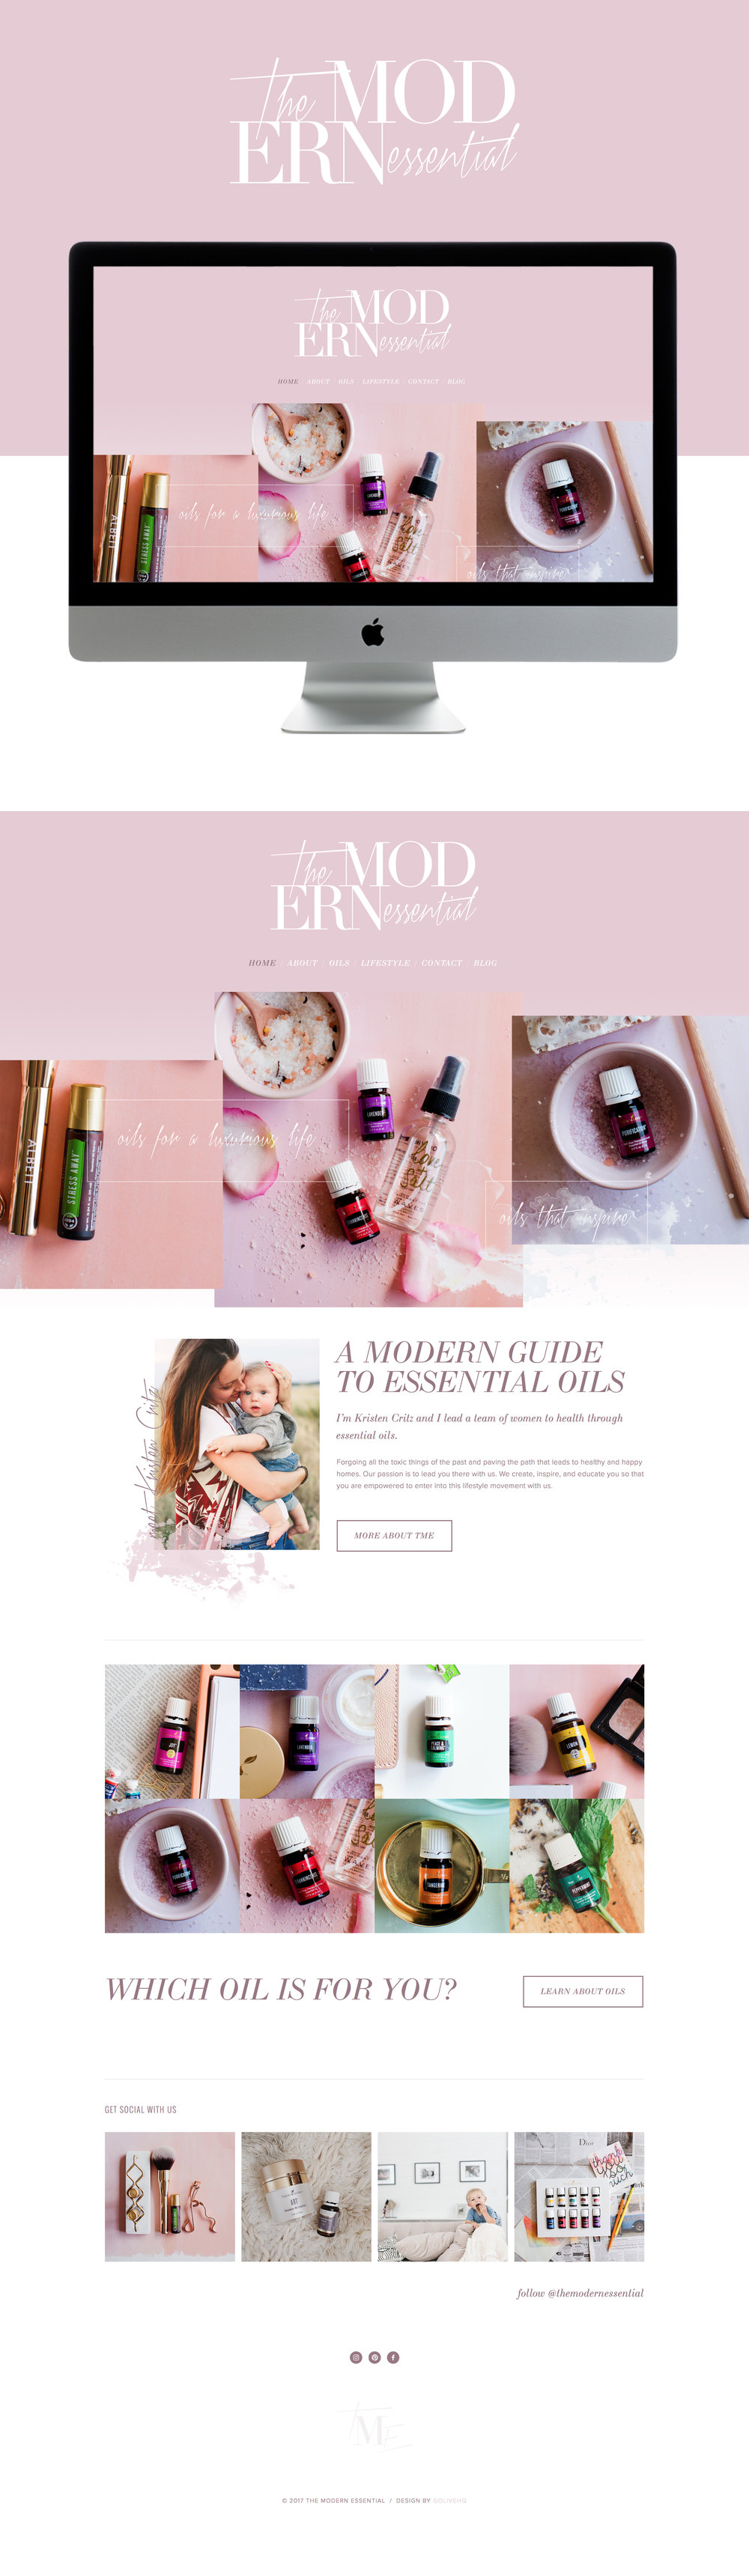 fashionable, clean & whimsical squarespace website design | designed by: golivehq.co